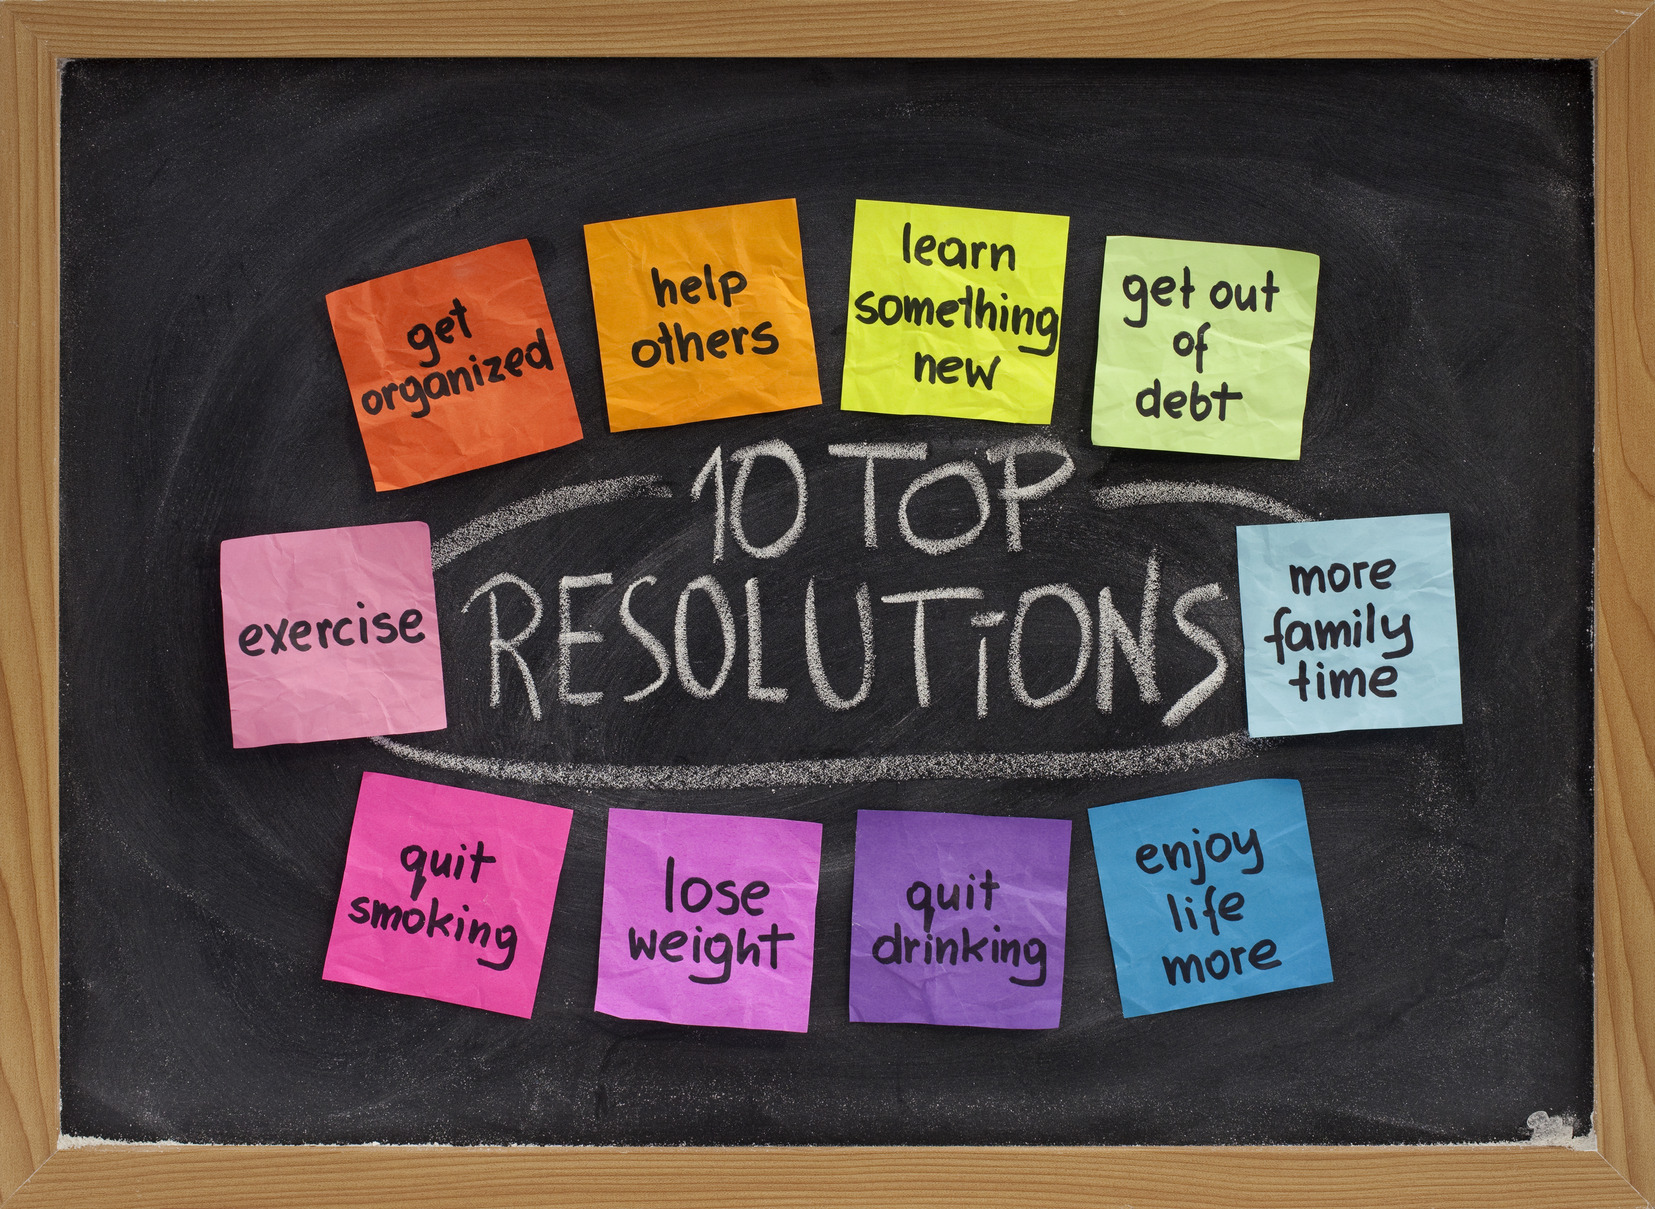 Top 2012 Social Media Resolutions: Share Less, With Fewer People